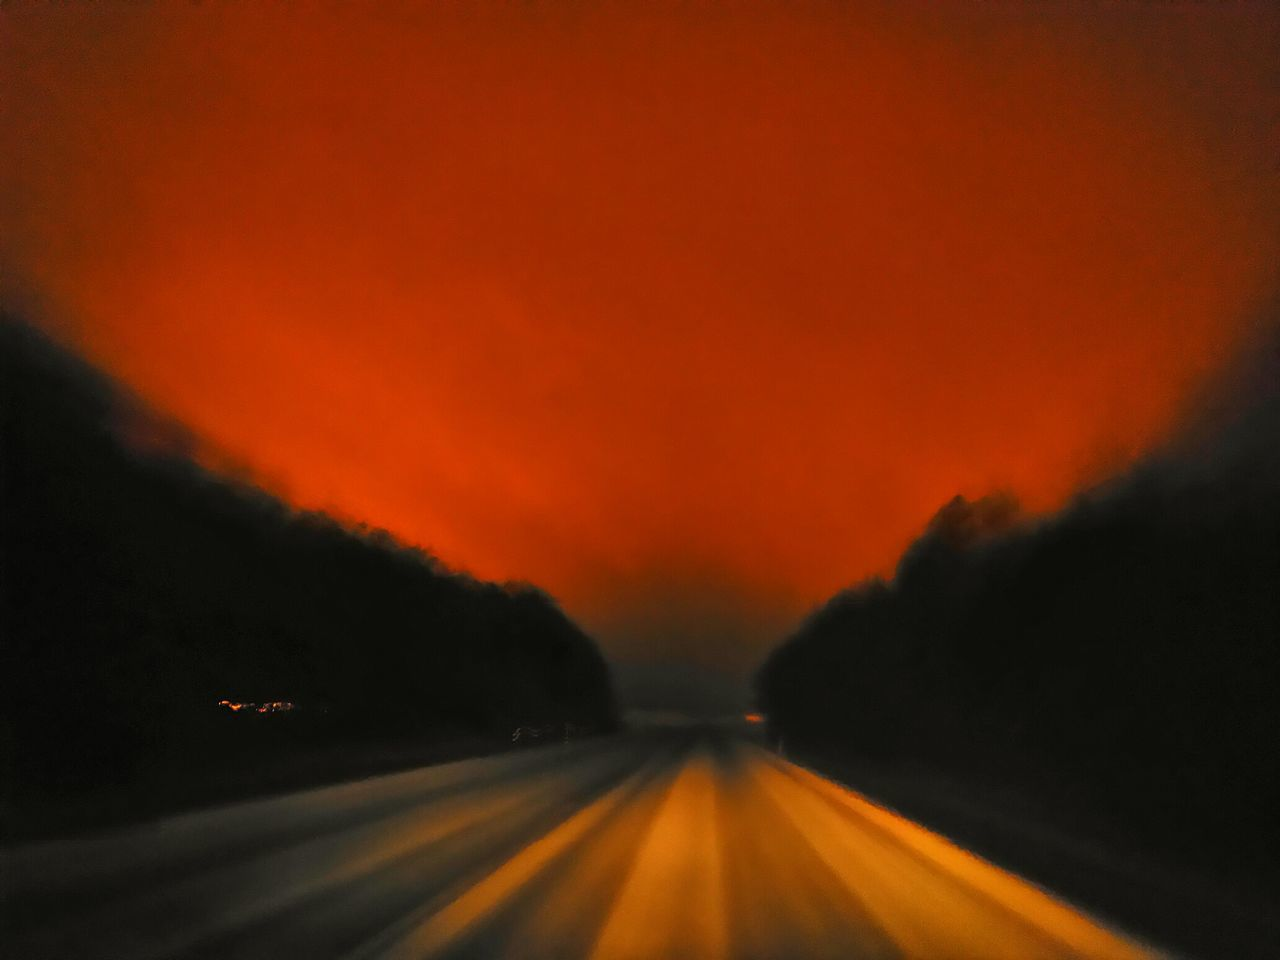 road, transportation, orange color, the way forward, no people, nature, sunset, outdoors, scenics, beauty in nature, mountain, night, sky